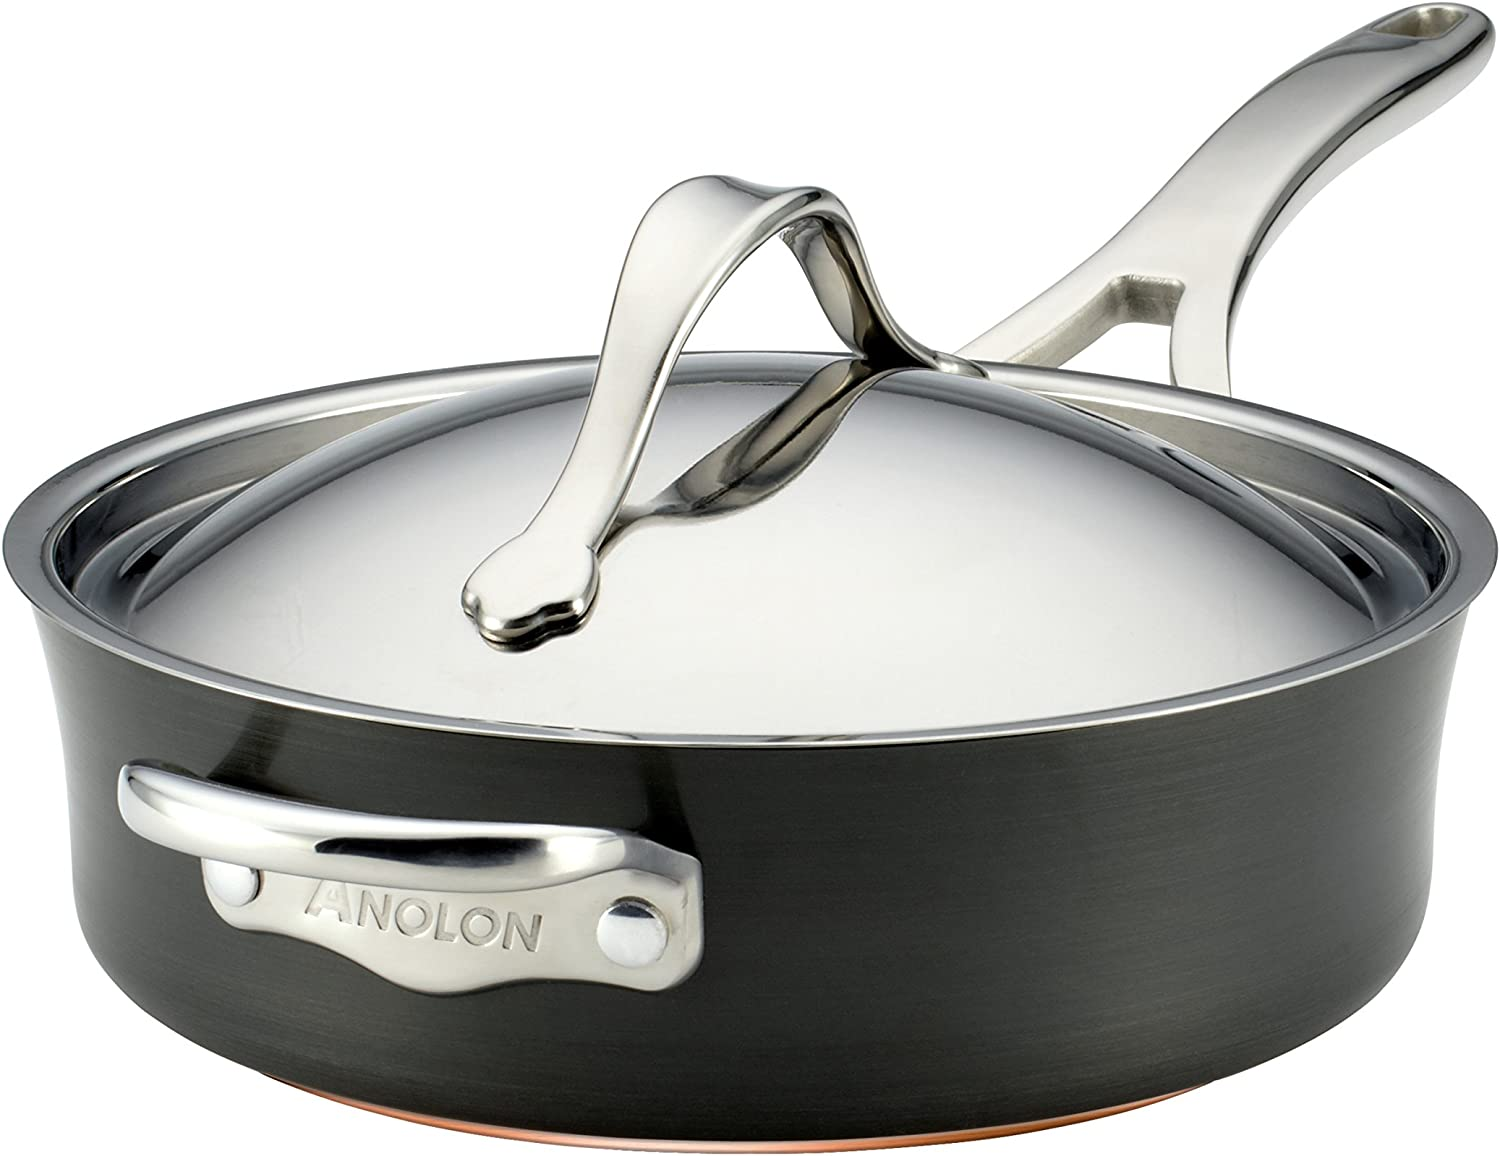 Where is anolon cookware mad